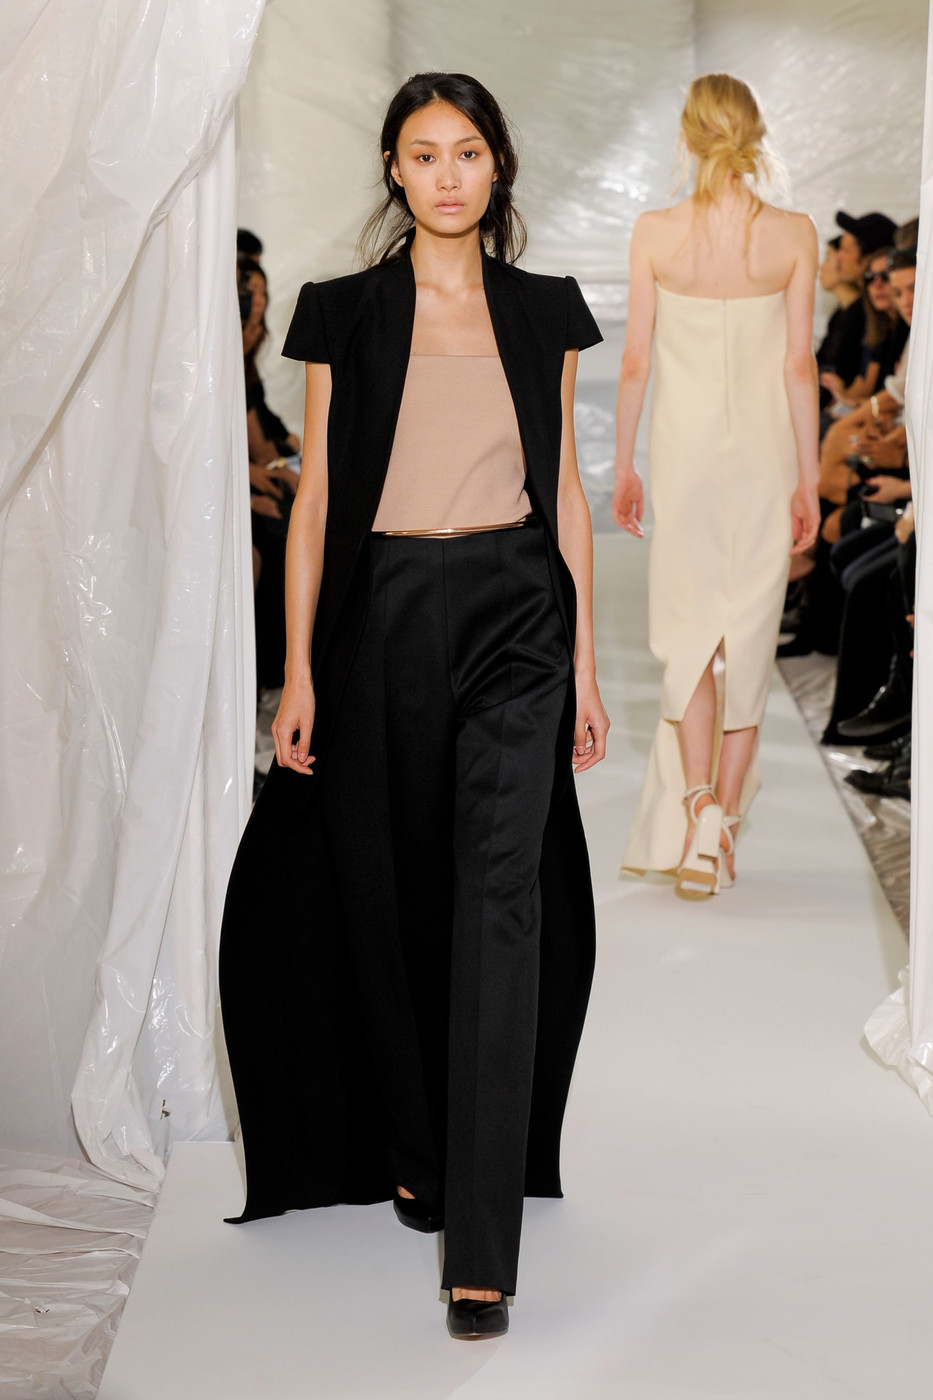 Maison martin margiela spring 2013 runway pictures livingly for Maison martin margiela paris